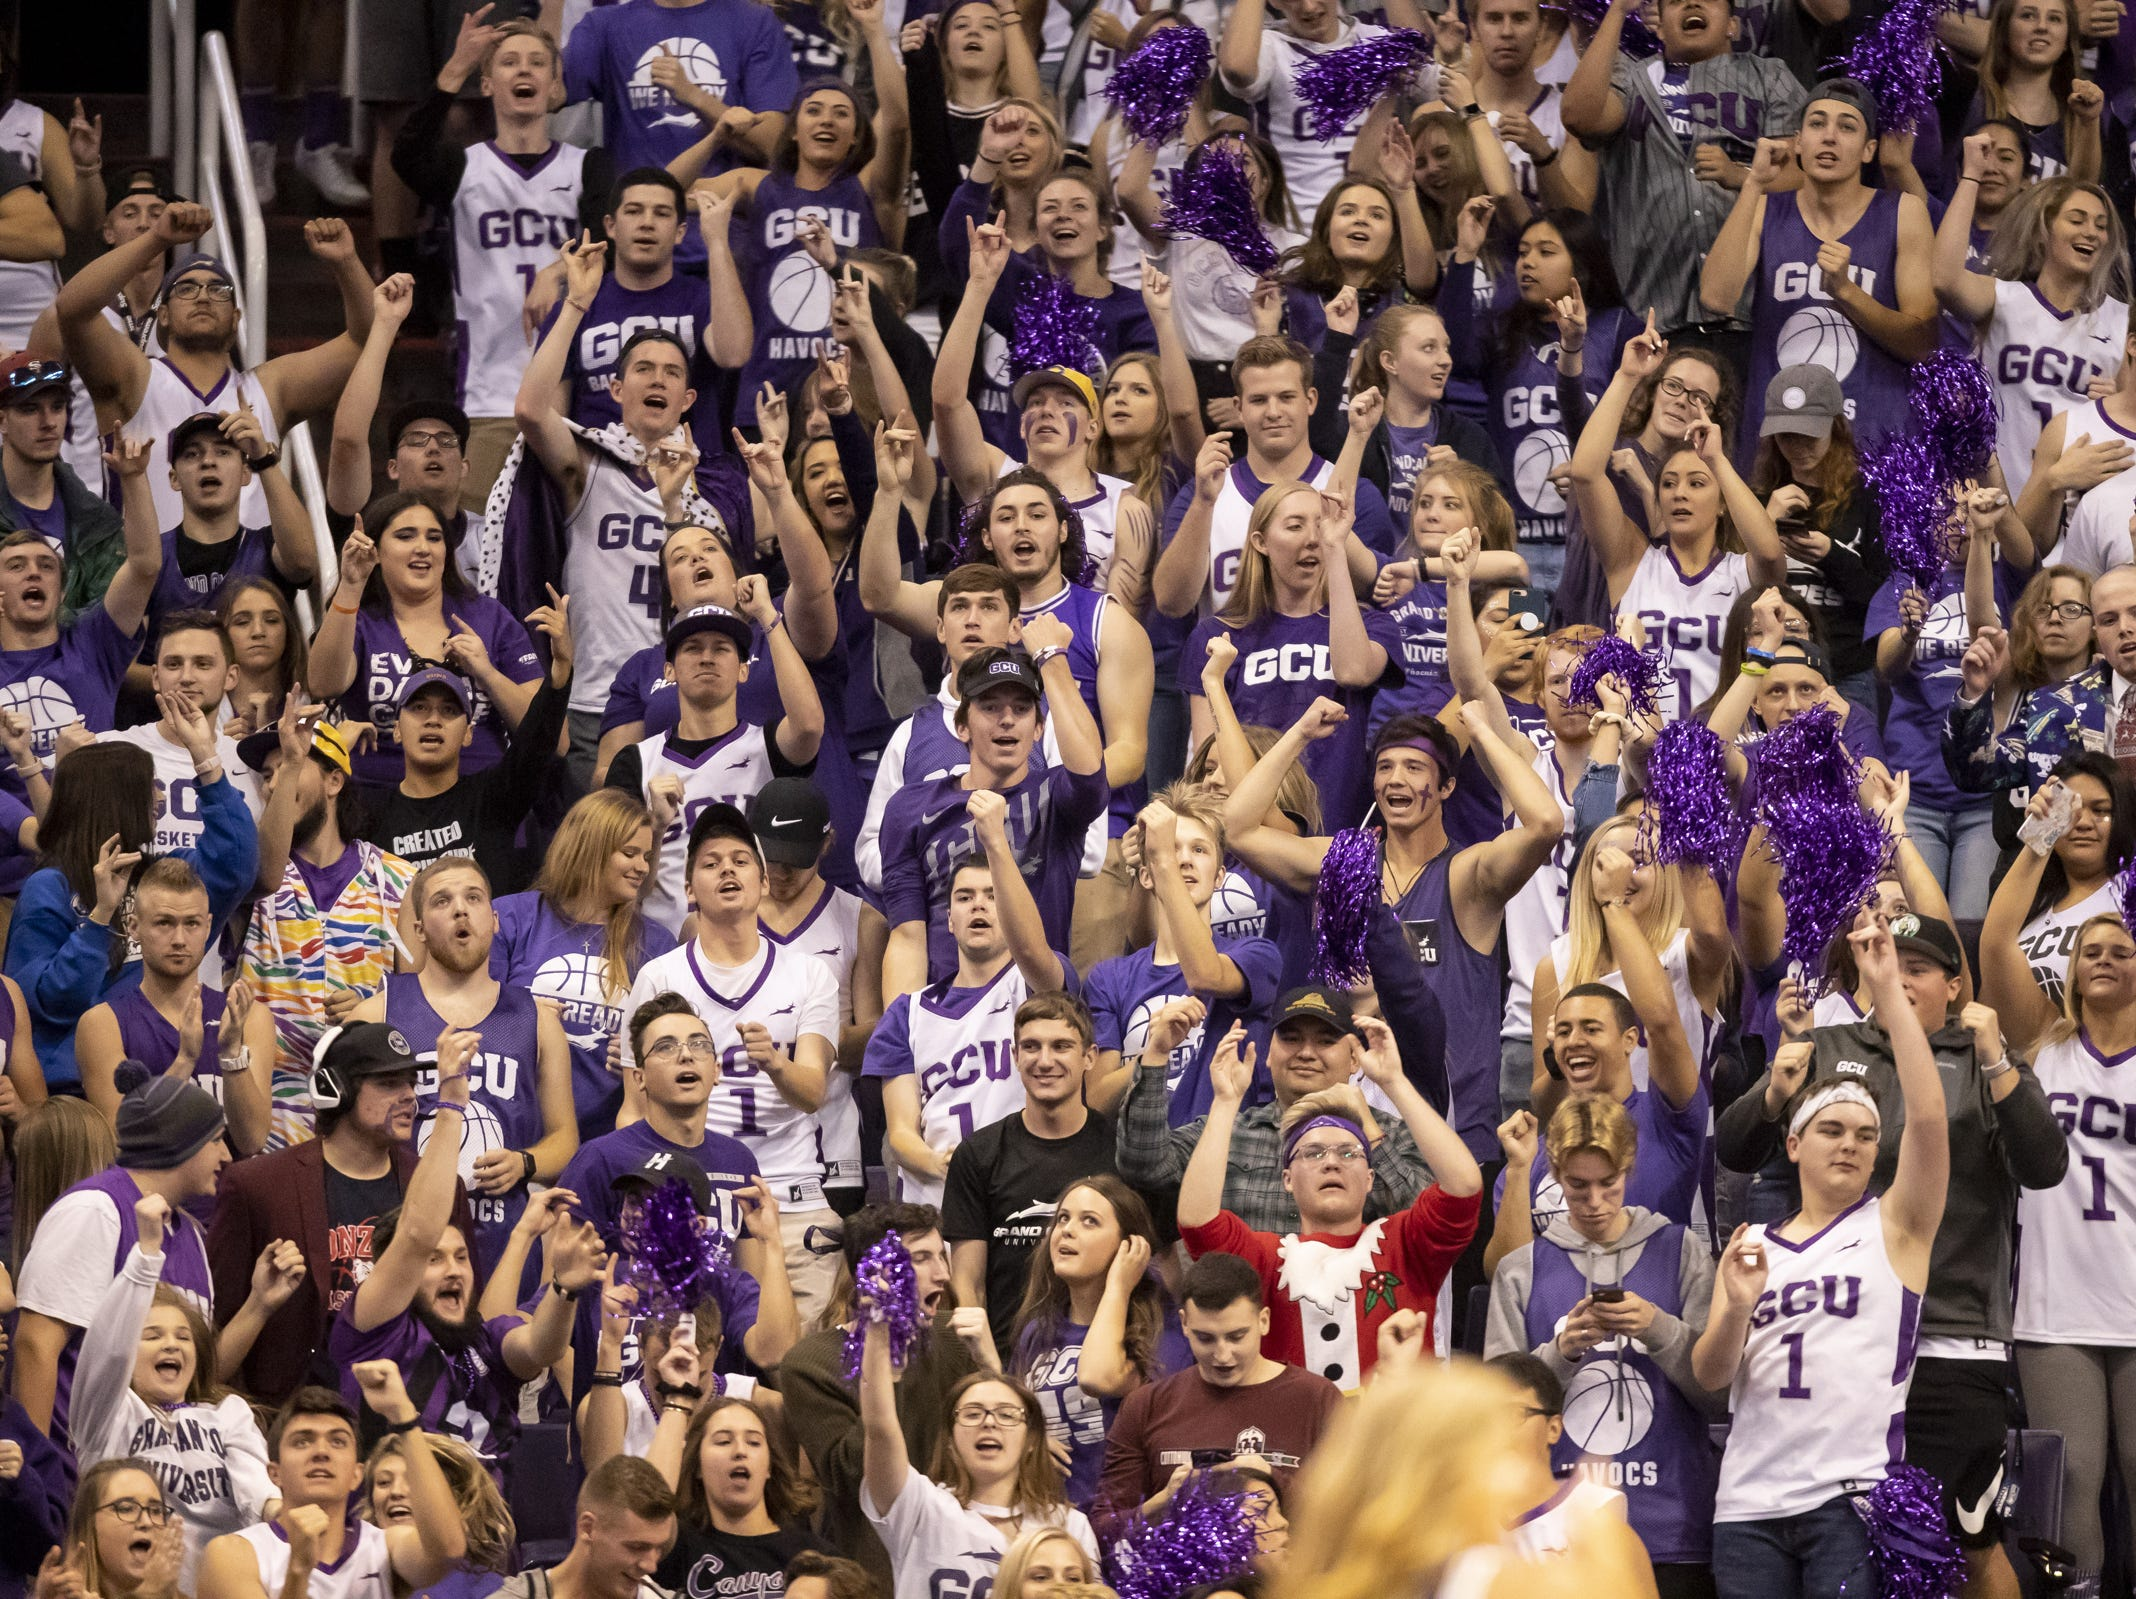 The Grand Canyon student section cheers during the 2018 Jerry Colangelo Classic against Nevada Wolf Pack at Talking Stick Resort Arena on Sunday, December 9, 2018 in Phoenix, Arizona.